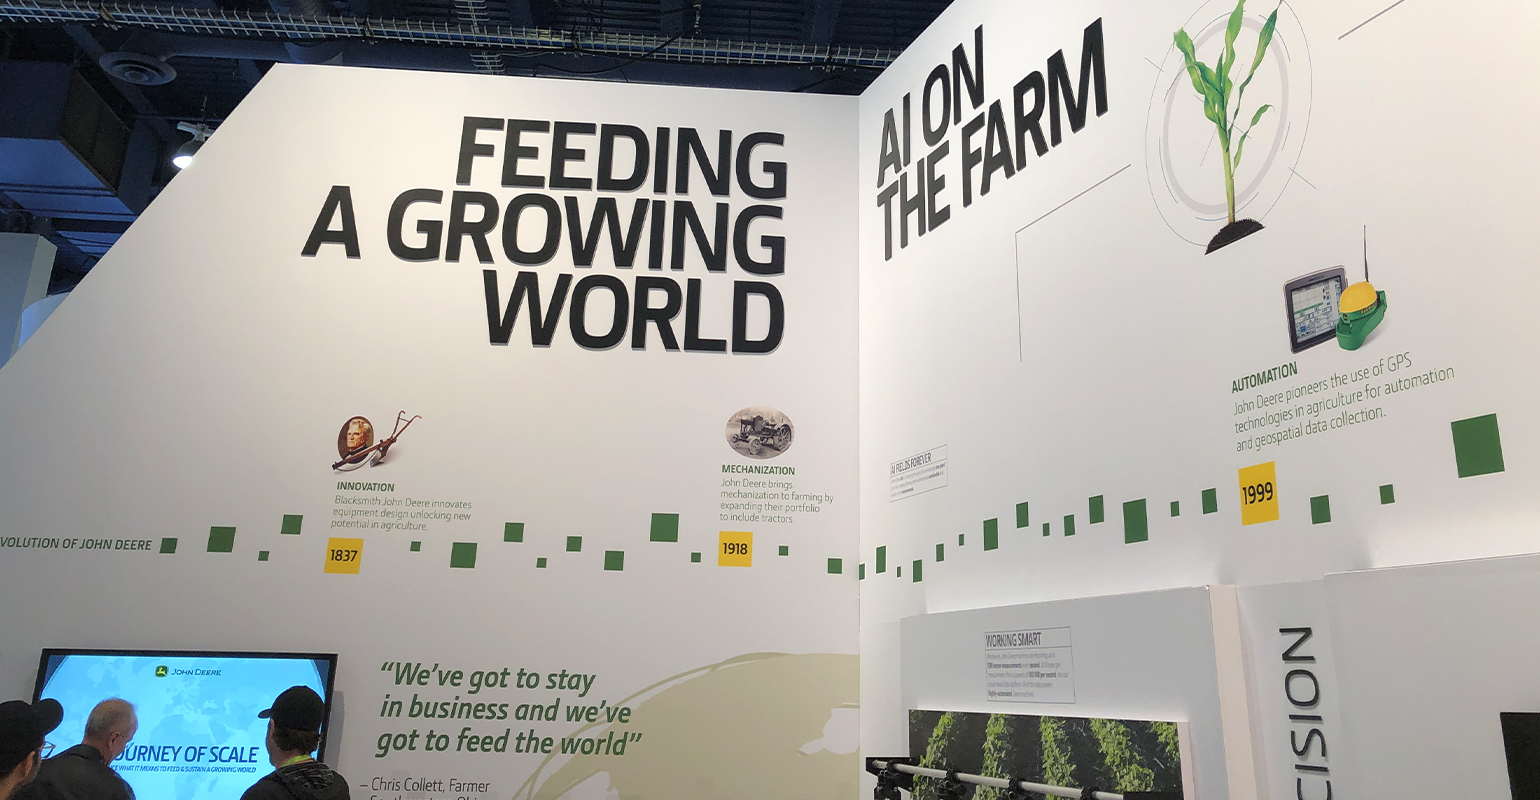 John Deere display at CES shares the story of technology in sustainable agriculture